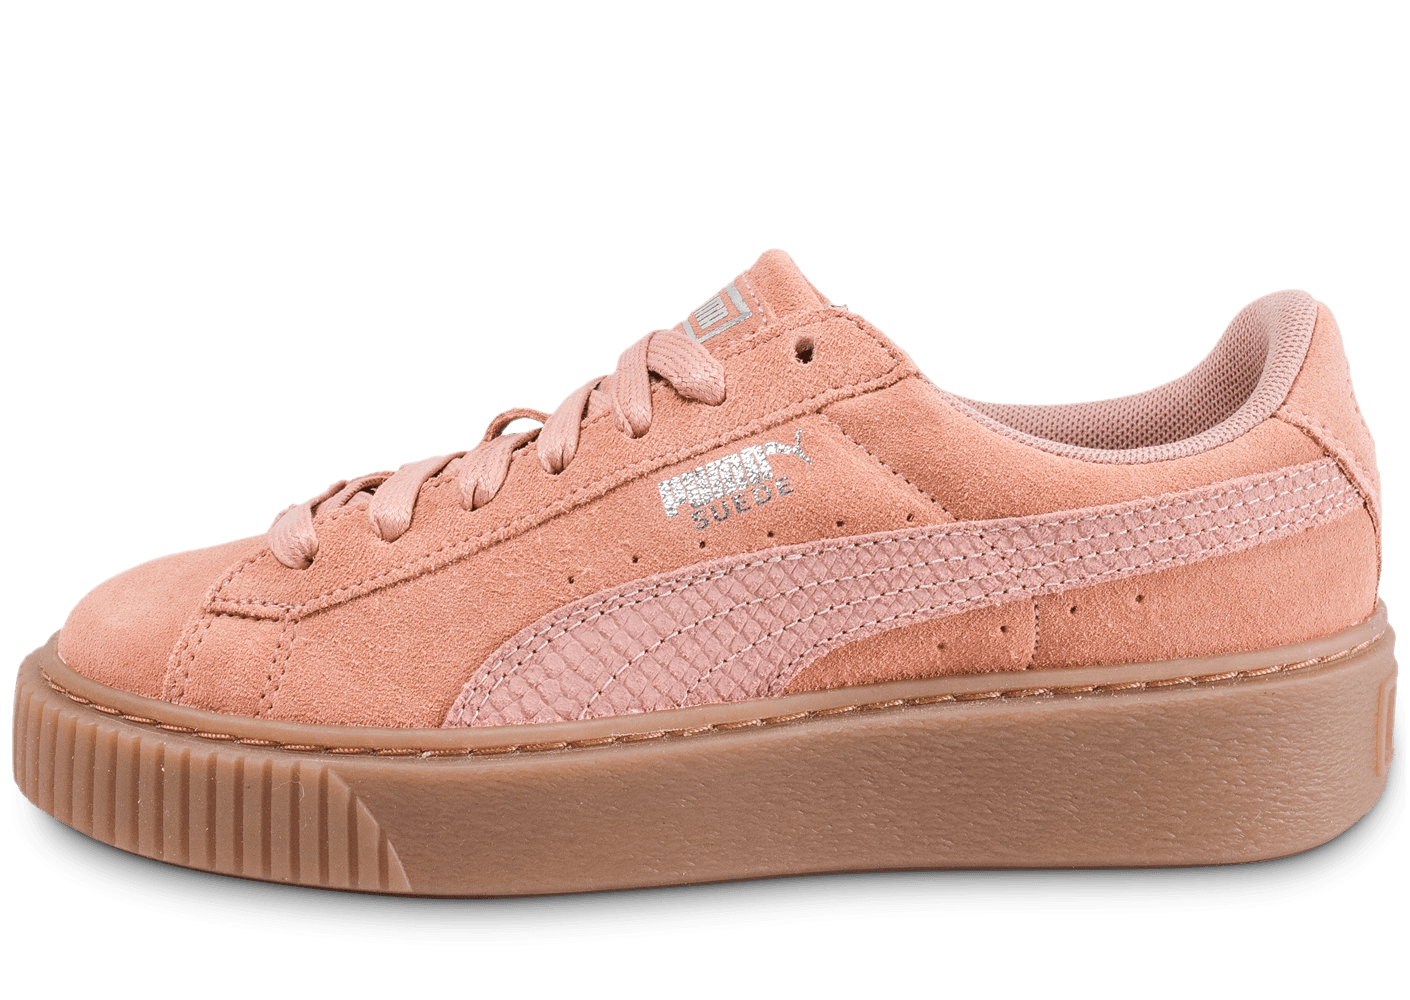 puma rose semelle marron